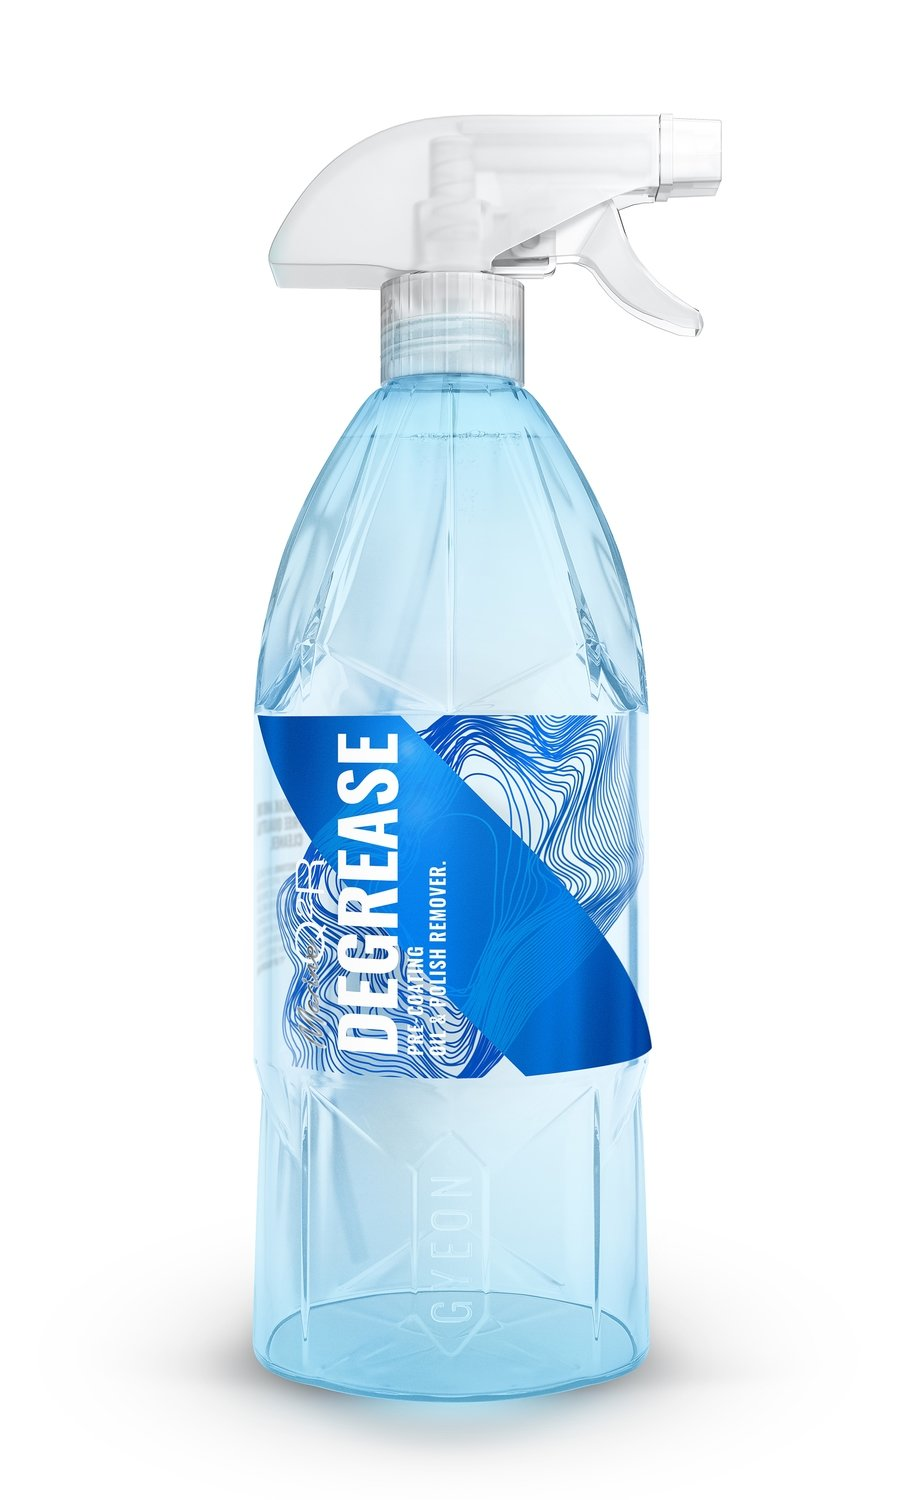 Q2R Degrease 1000ml NEW!